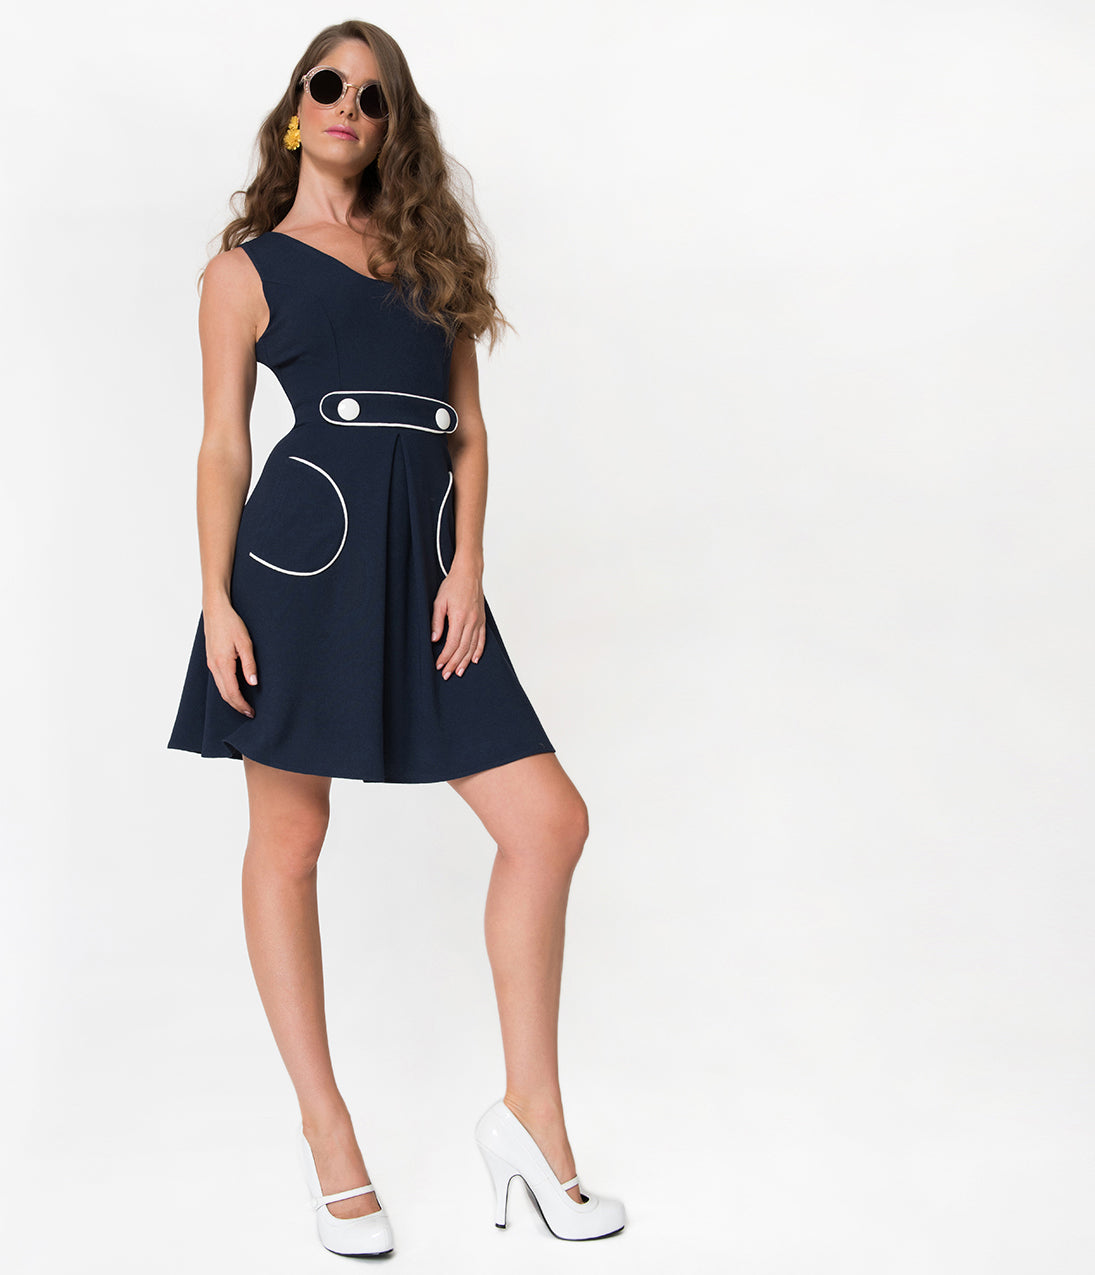 500 Vintage Style Dresses for Sale 1970S Style Navy Blue  White Crepe Sleeveless Fit  Flare Dress $62.00 AT vintagedancer.com